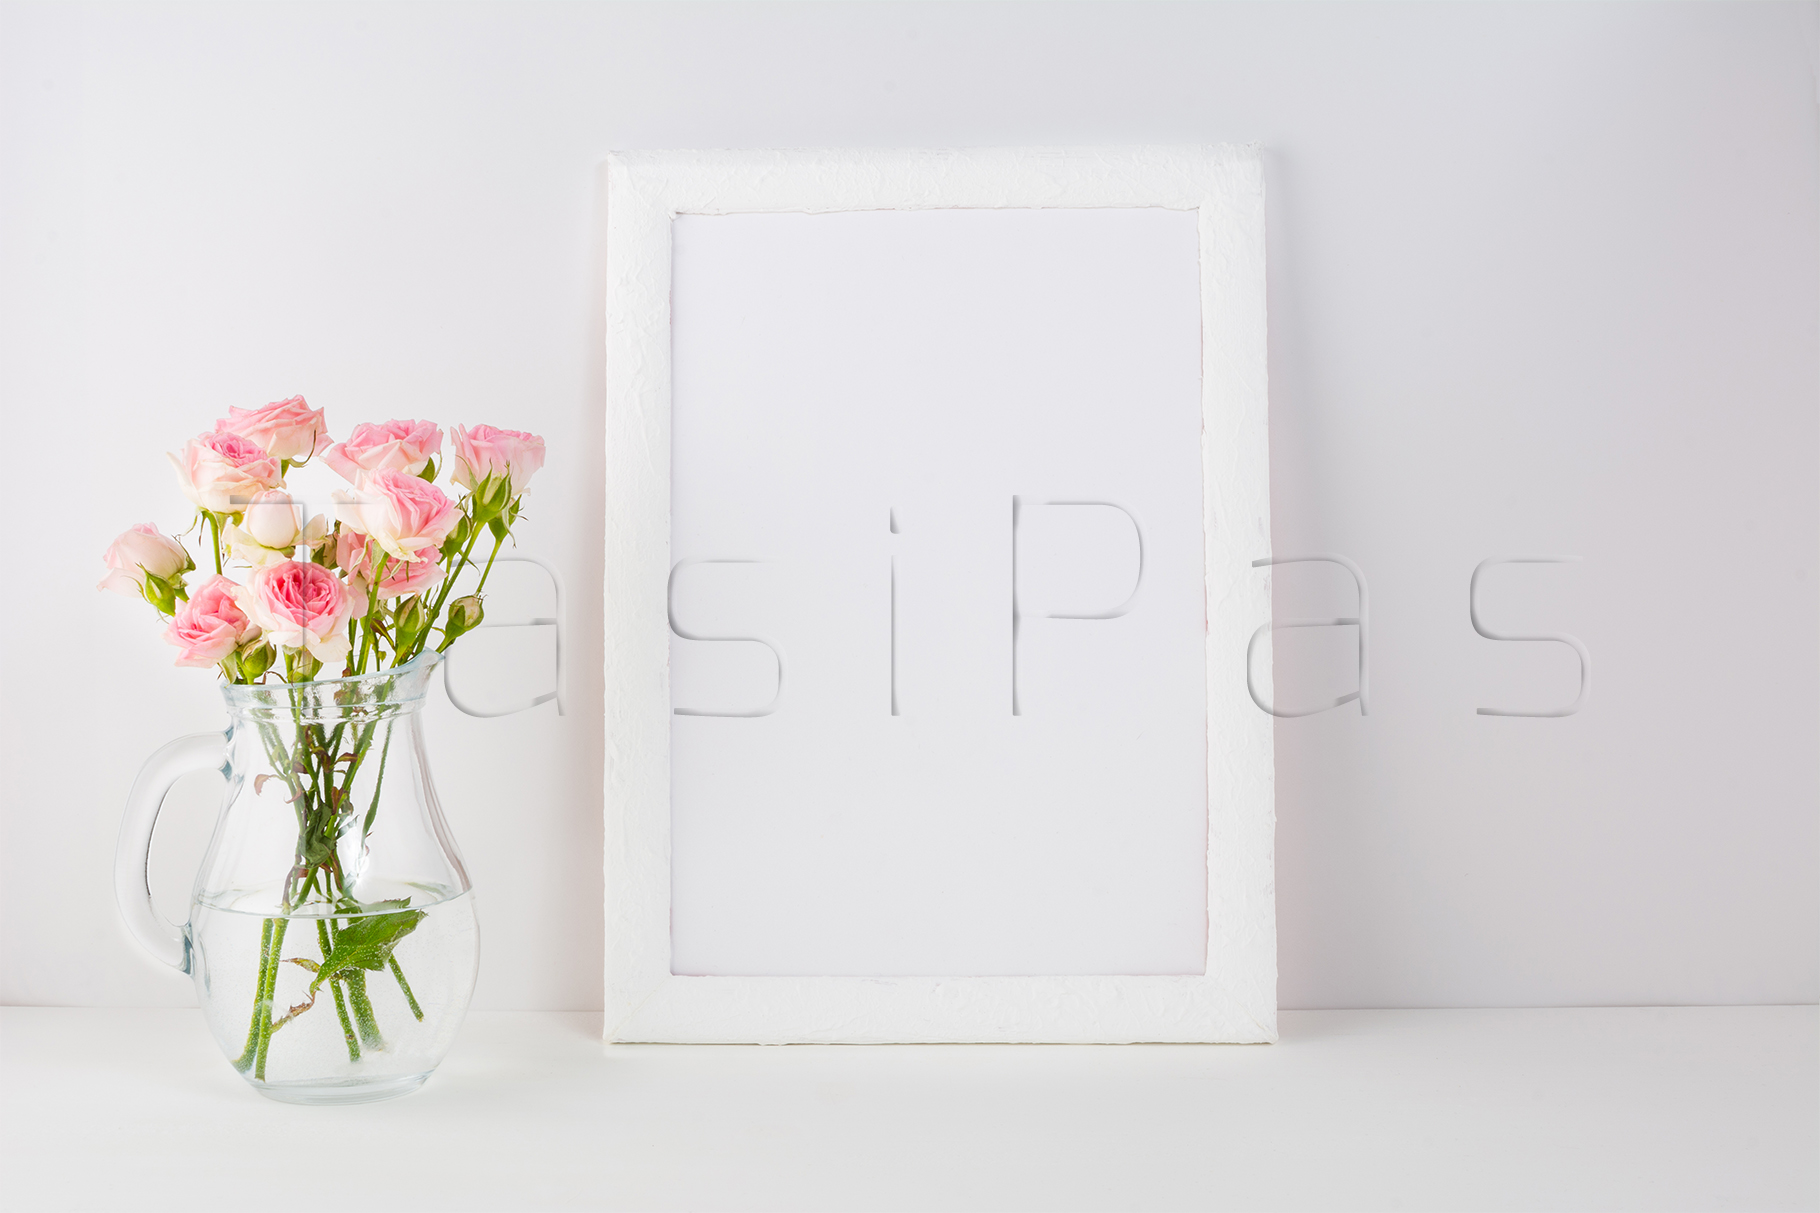 Frame mockup with pink roses example image 2